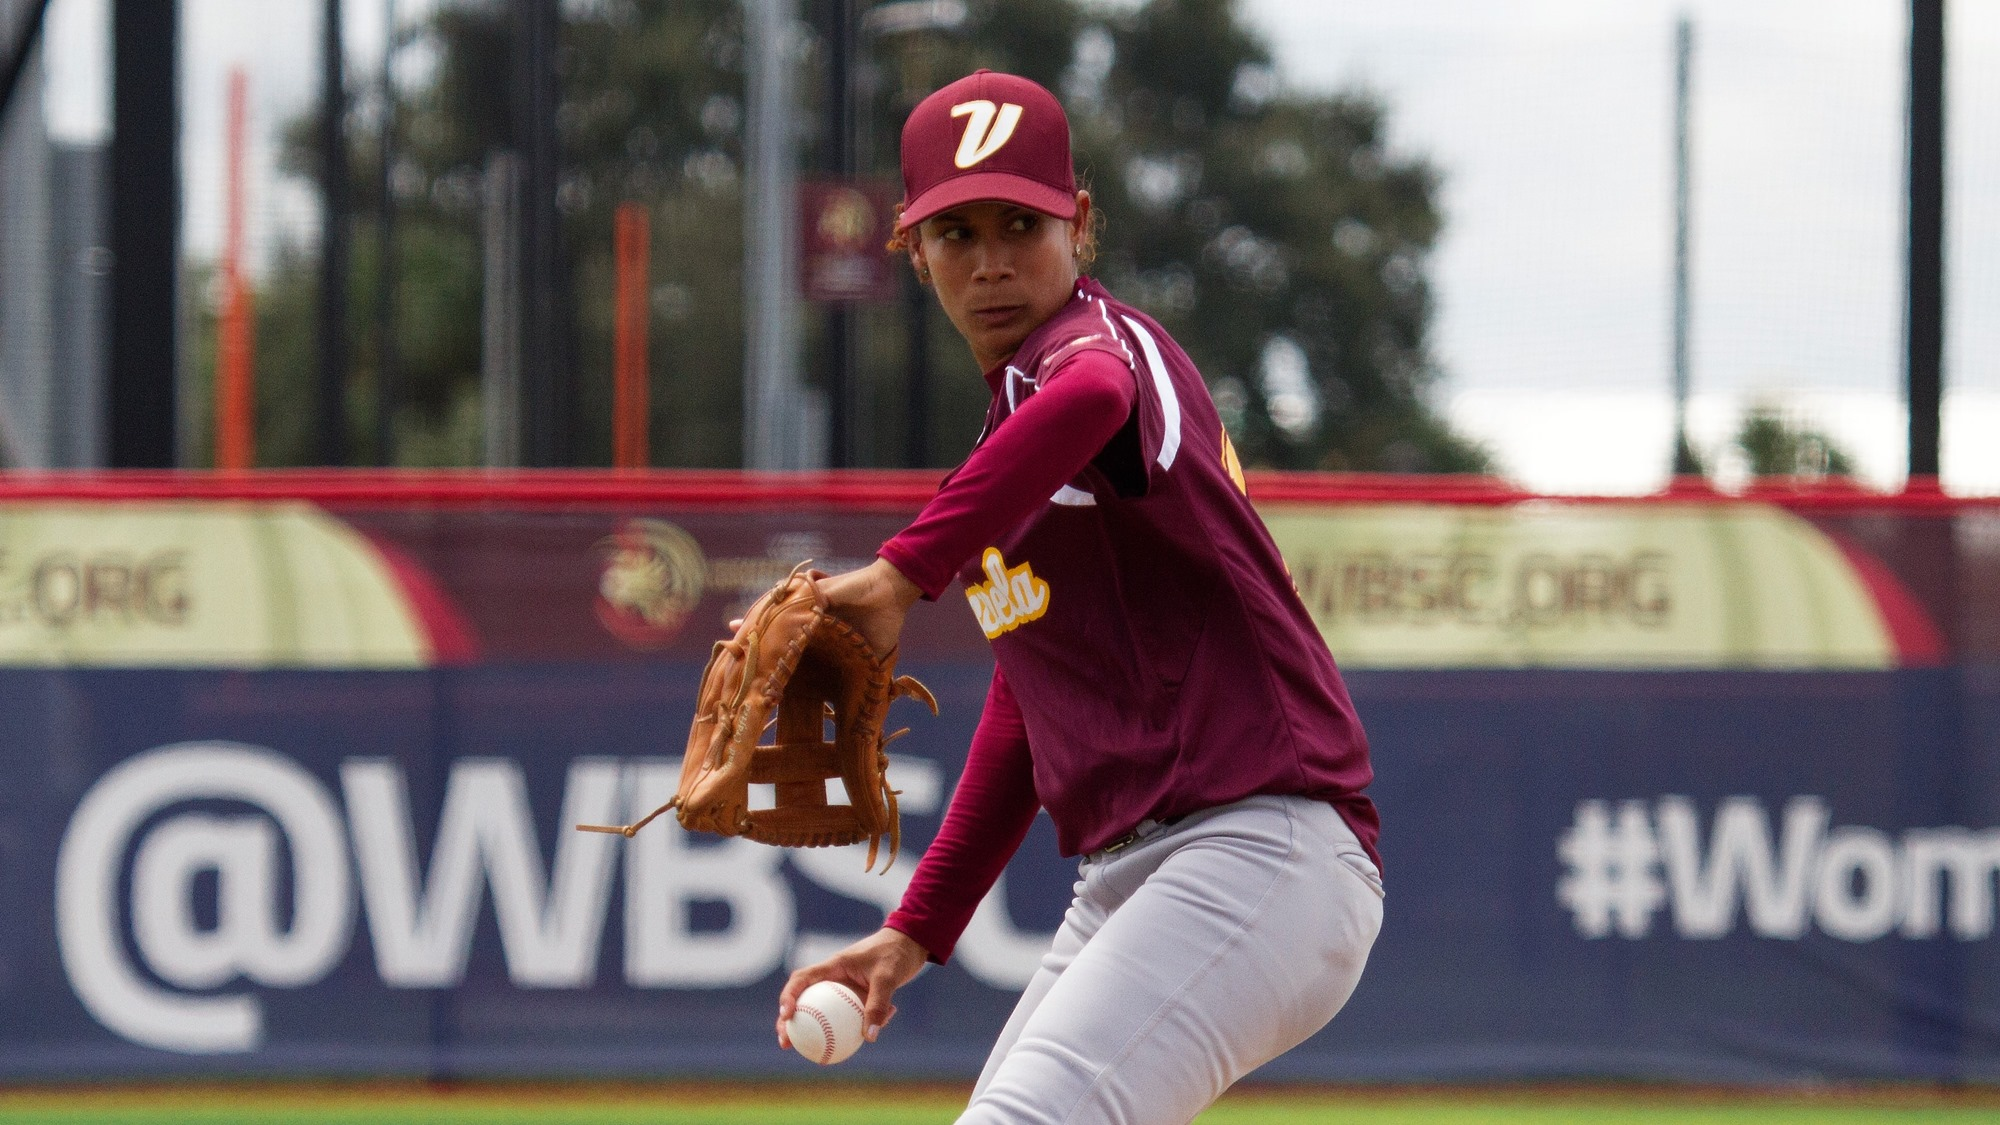 Giddely Cumanas pitched six innings to grab the win for Venezuela in an elimination game against Puerto Rico